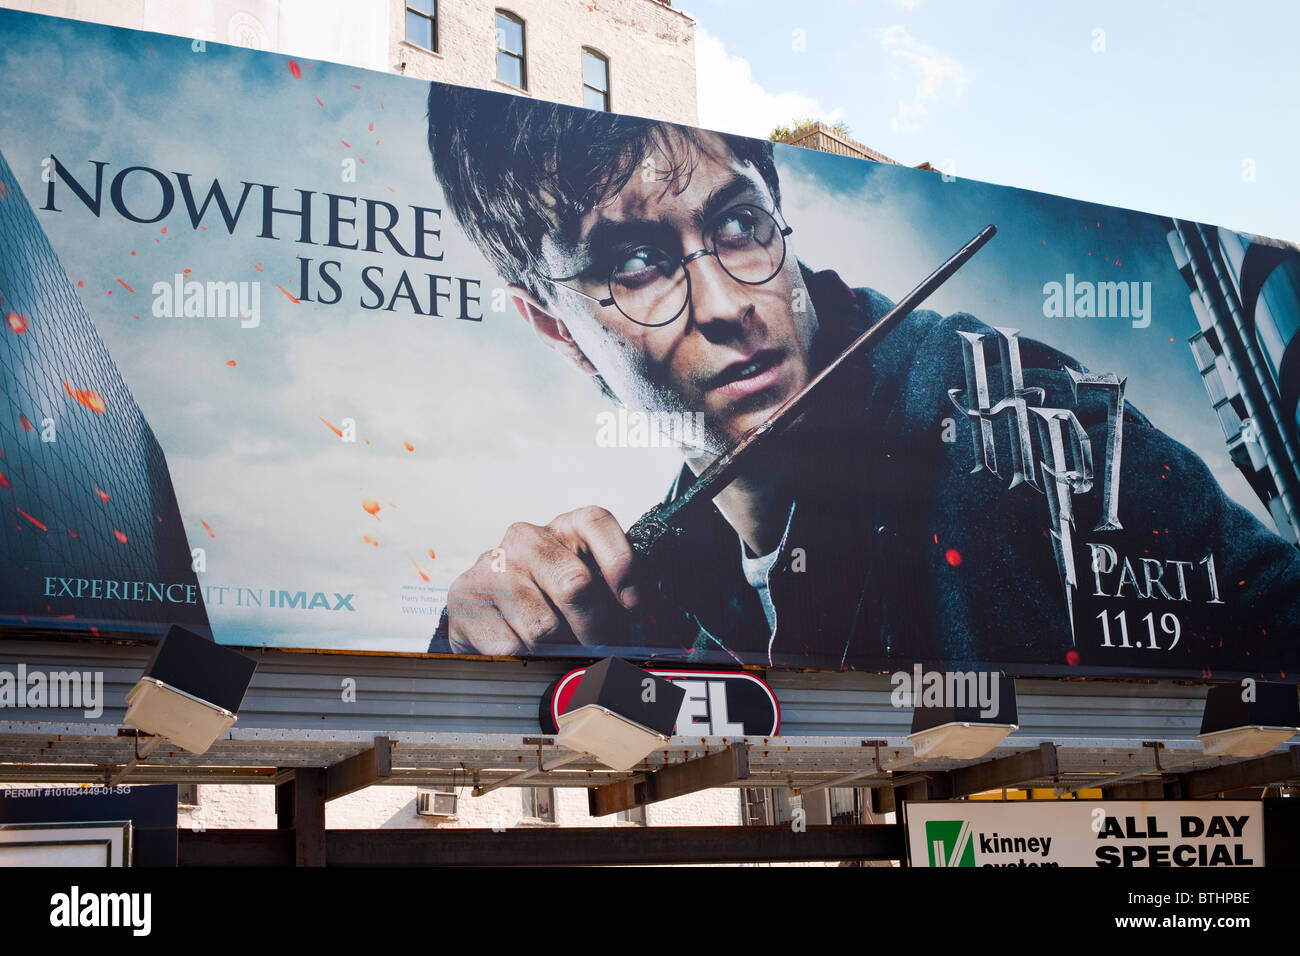 A billboard advertising the new Harry Potter film, 'Harry Potter and the Deathly Hallows', seen on in New - Stock Image